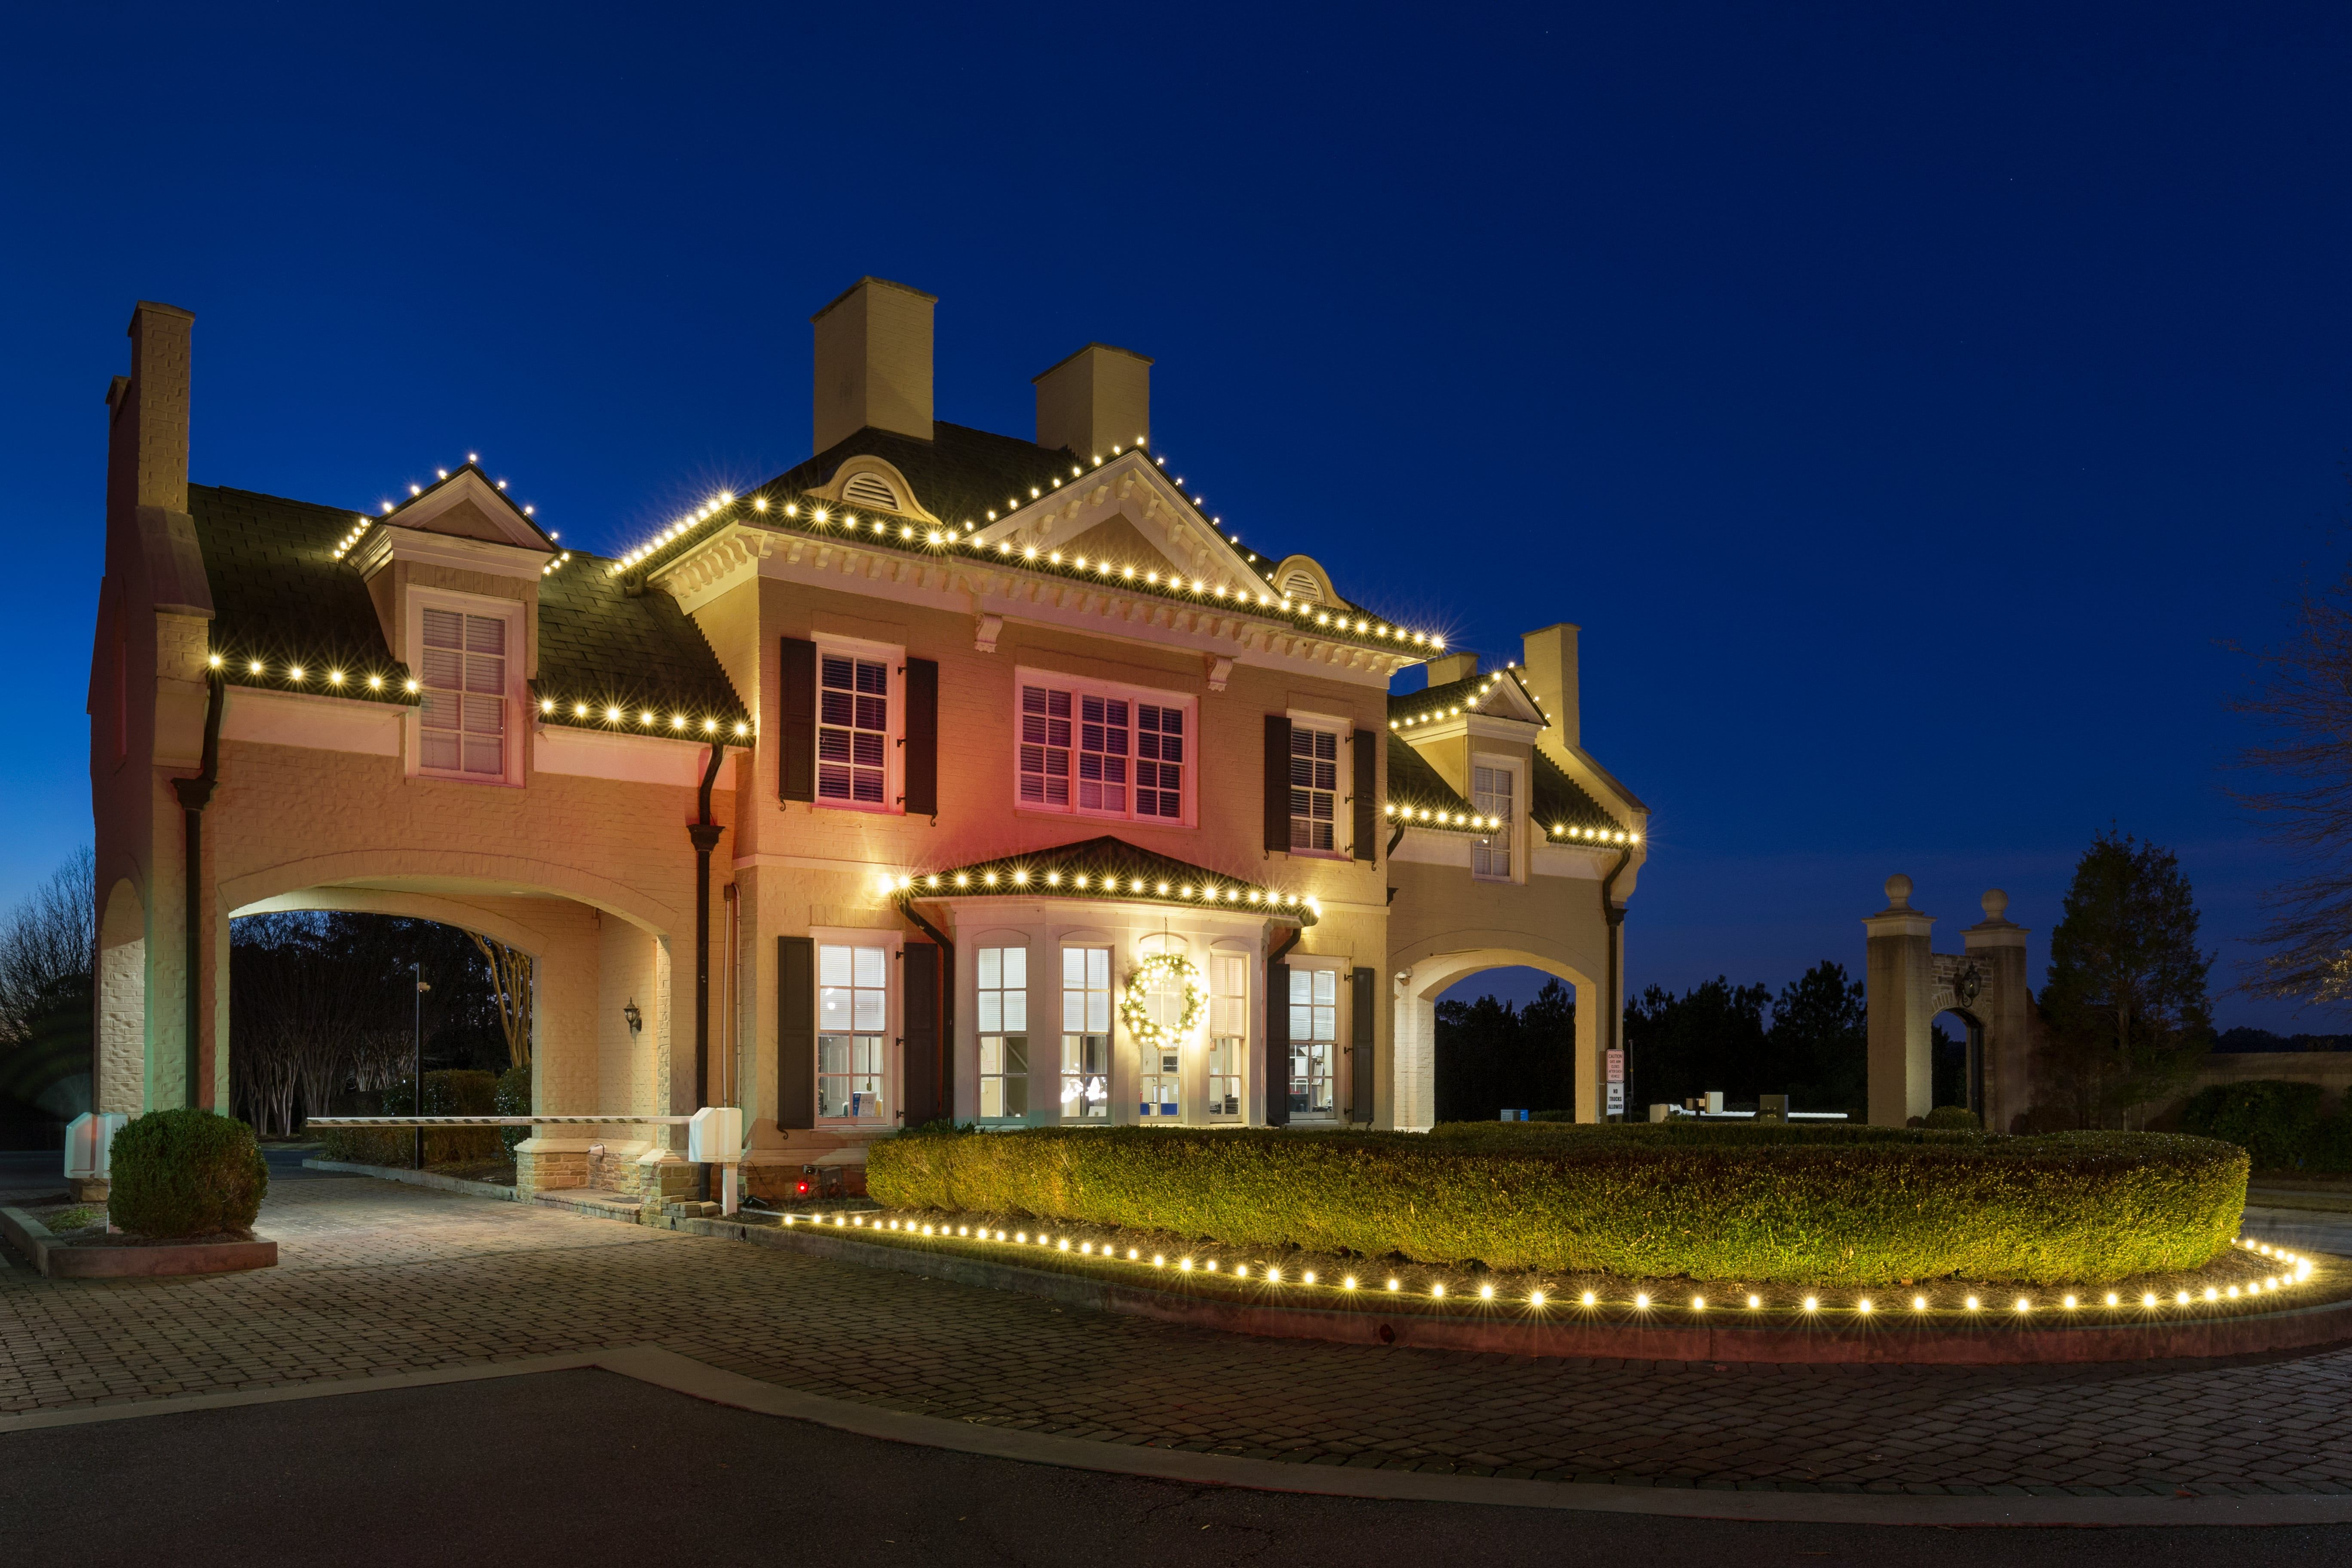 Beautiful Commercial Christmas Lighting Of A Security Building Neighborhood Entrance In Atlanta Ga Get More Design Ideas At The Links Below